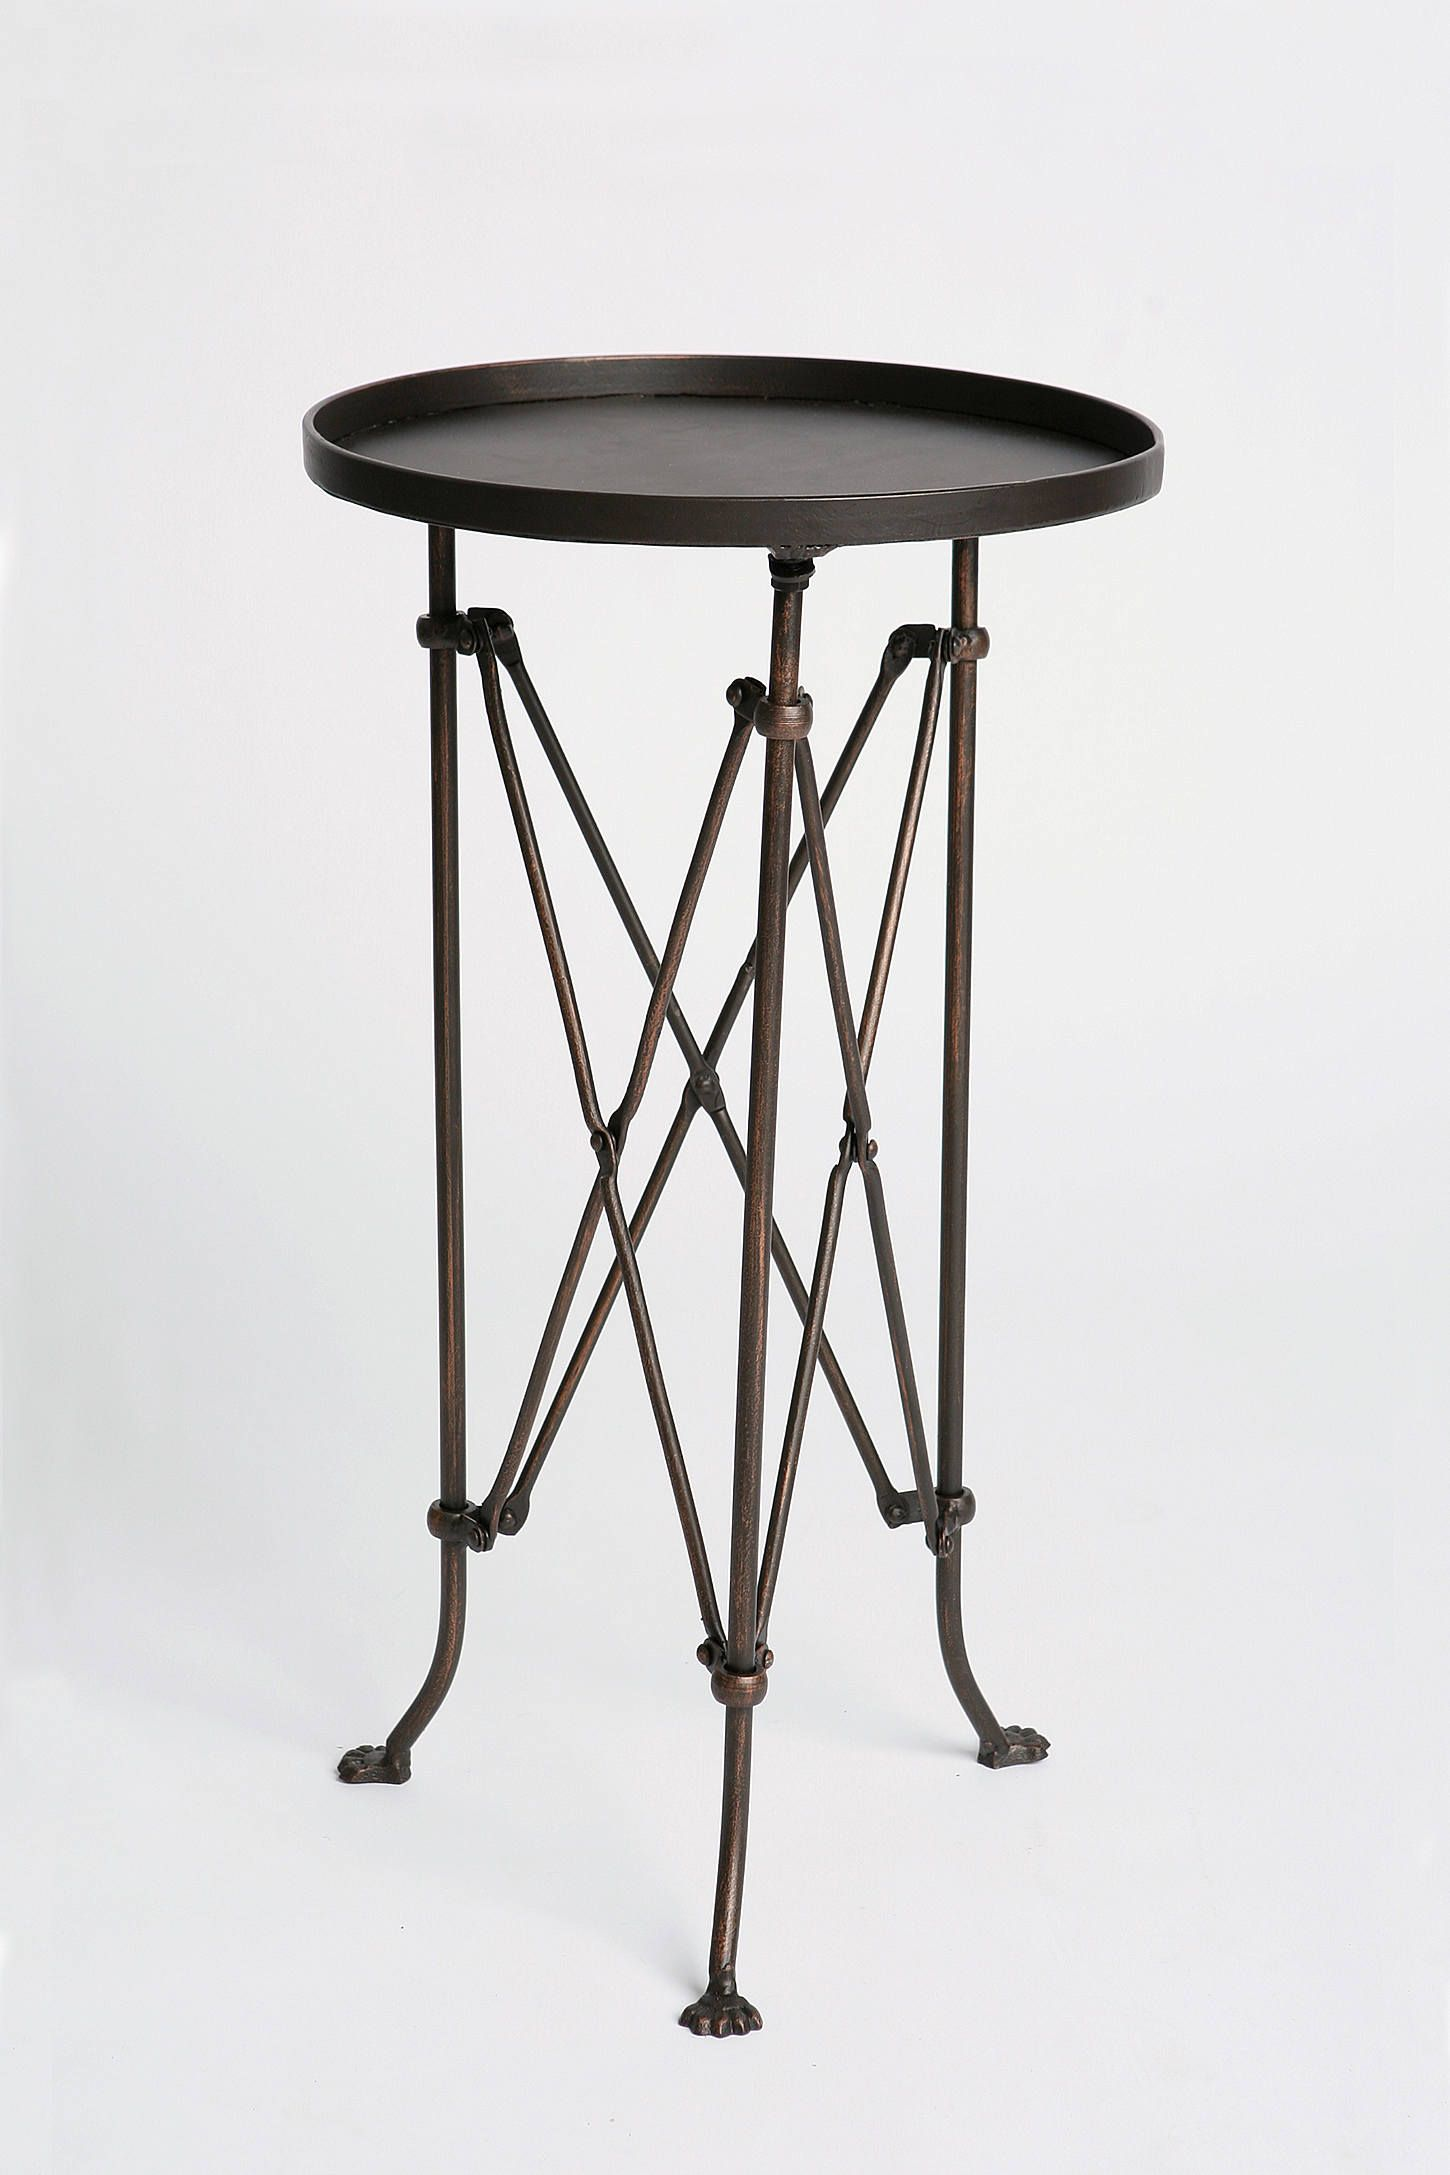 amazing metal accent table outdoor white target threshold top base patio glass round bronze side tables corranade wrought iron drum full size frog led battery lamp hourglass small